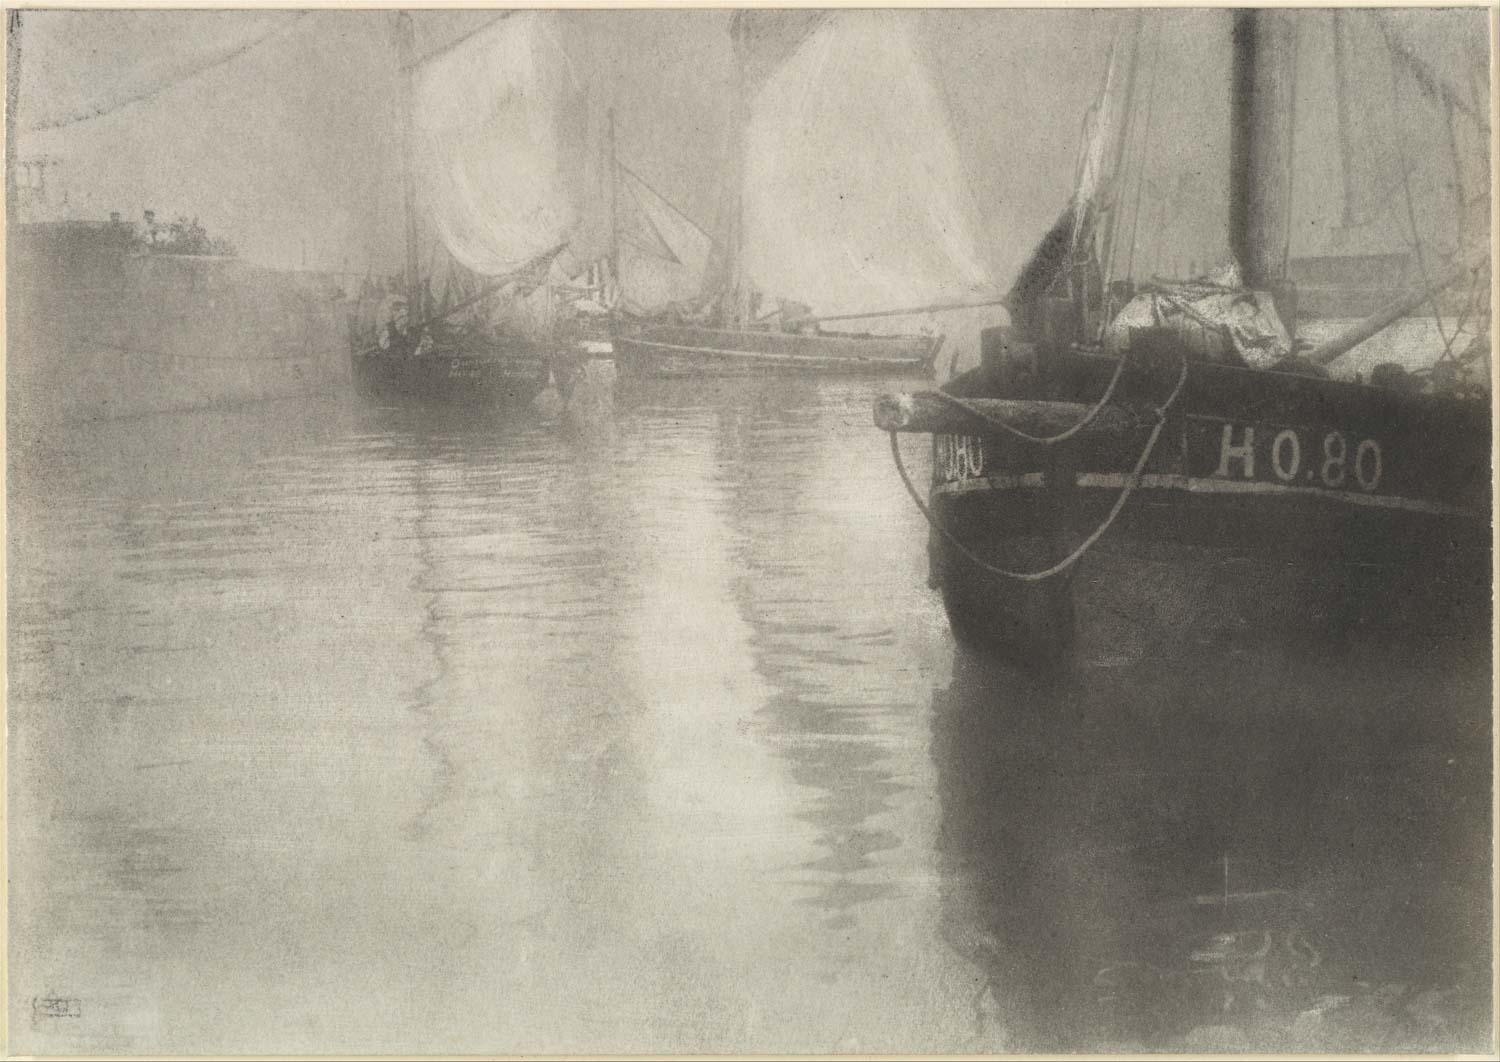 Honfleur, Robert Demachy, 1905, Alfred Stieglitz Collection